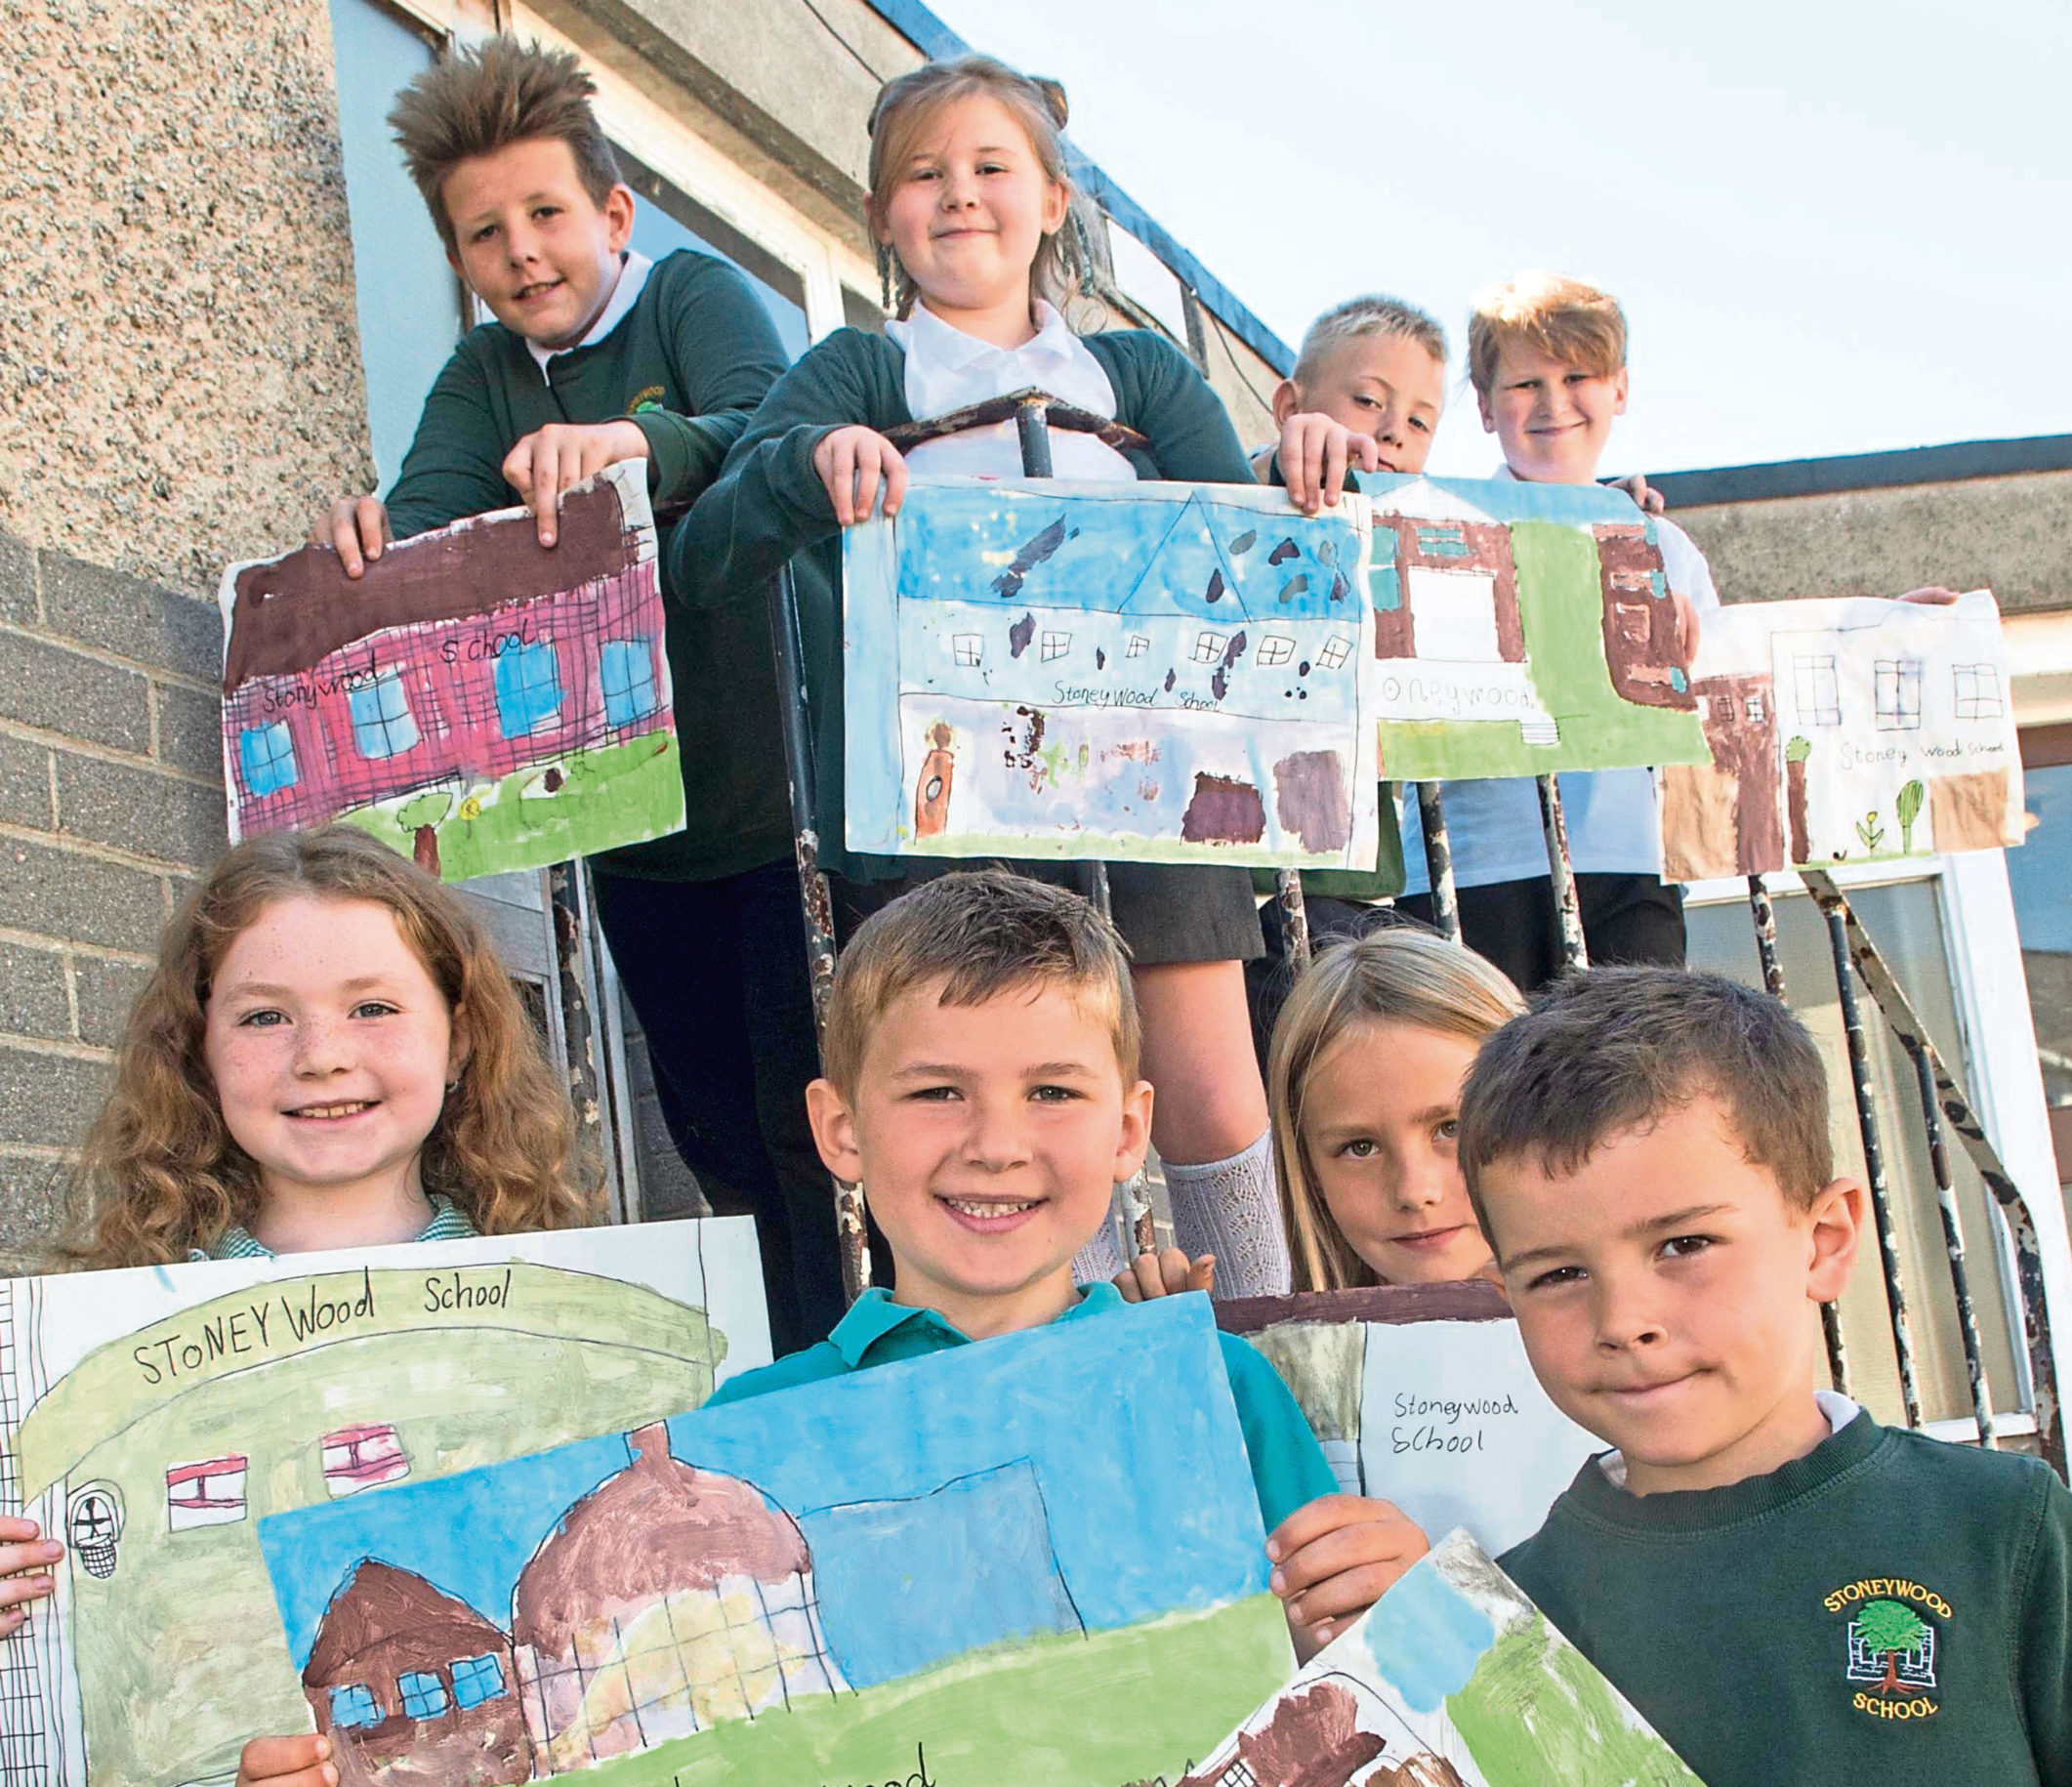 Stoneywood Scool pupils and their designs.  Dylan Currie, Nova Andrew, Adam Booth. Keira Duncan, Aden Robertson, Katie West. Lewis West, Reece Murison,